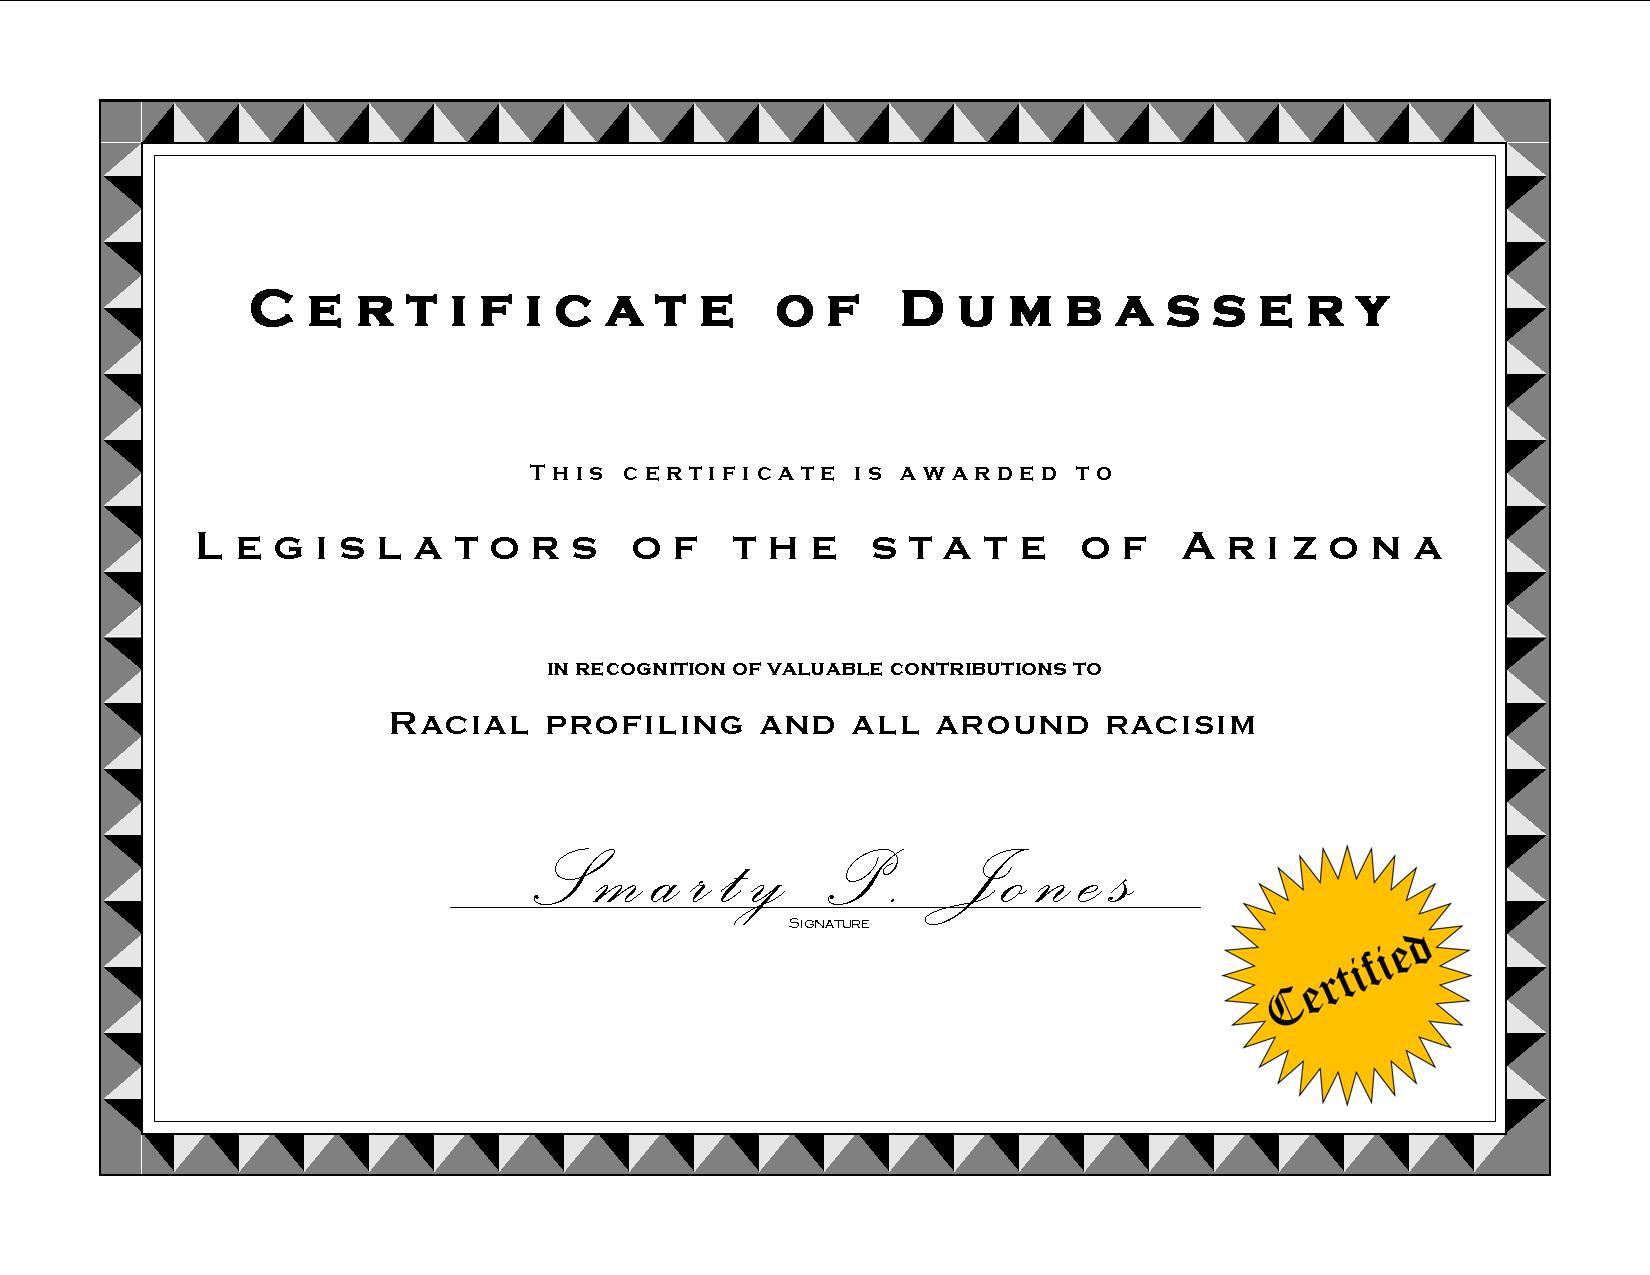 Dumbass award certificate